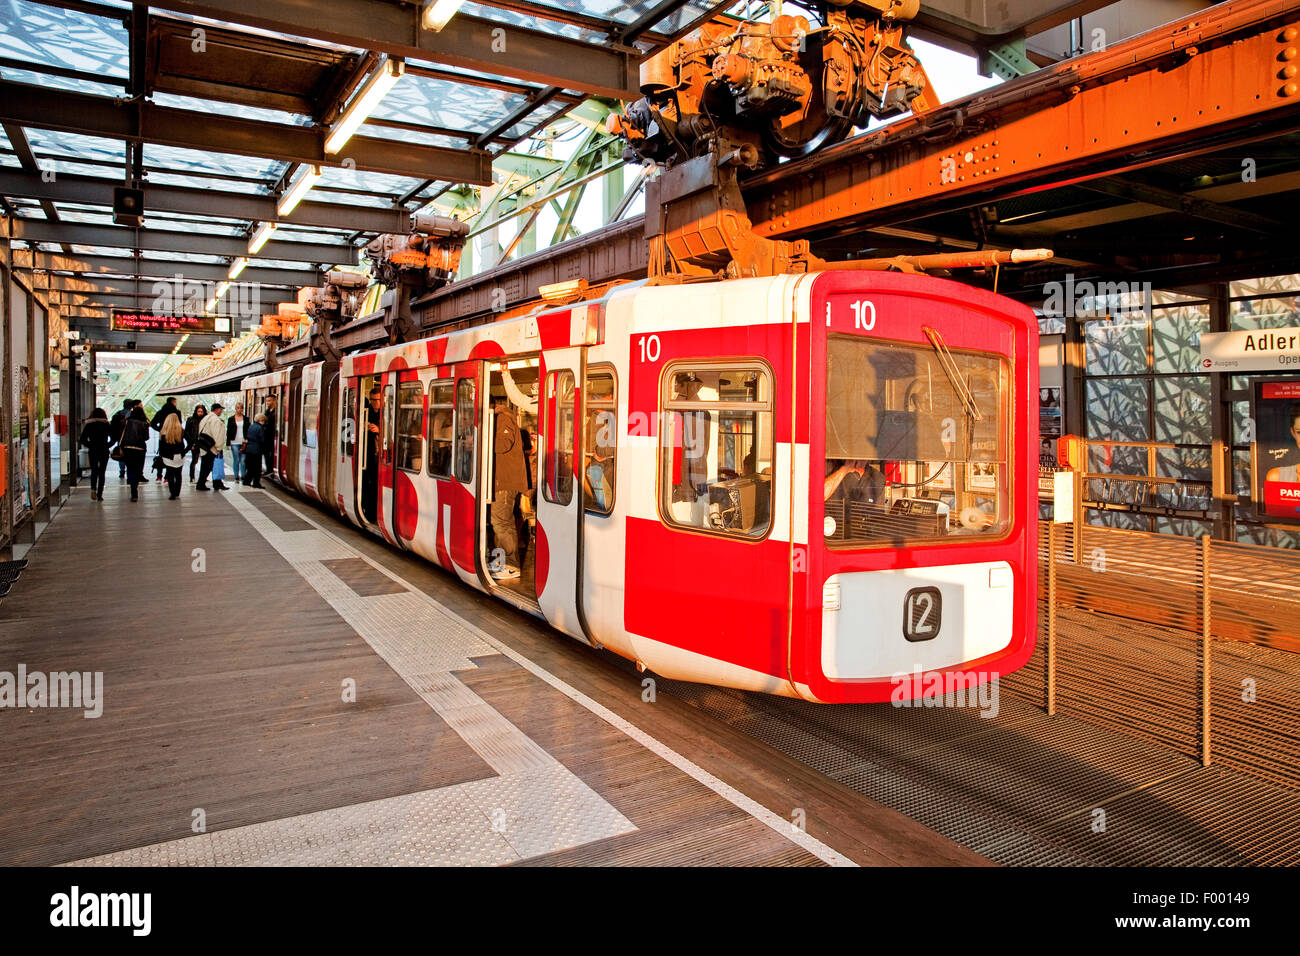 Wuppertal Suspension Railway at stopover Adlerbruecke, Germany, North Rhine-Westphalia, Bergisches Land, Wuppertal - Stock Image